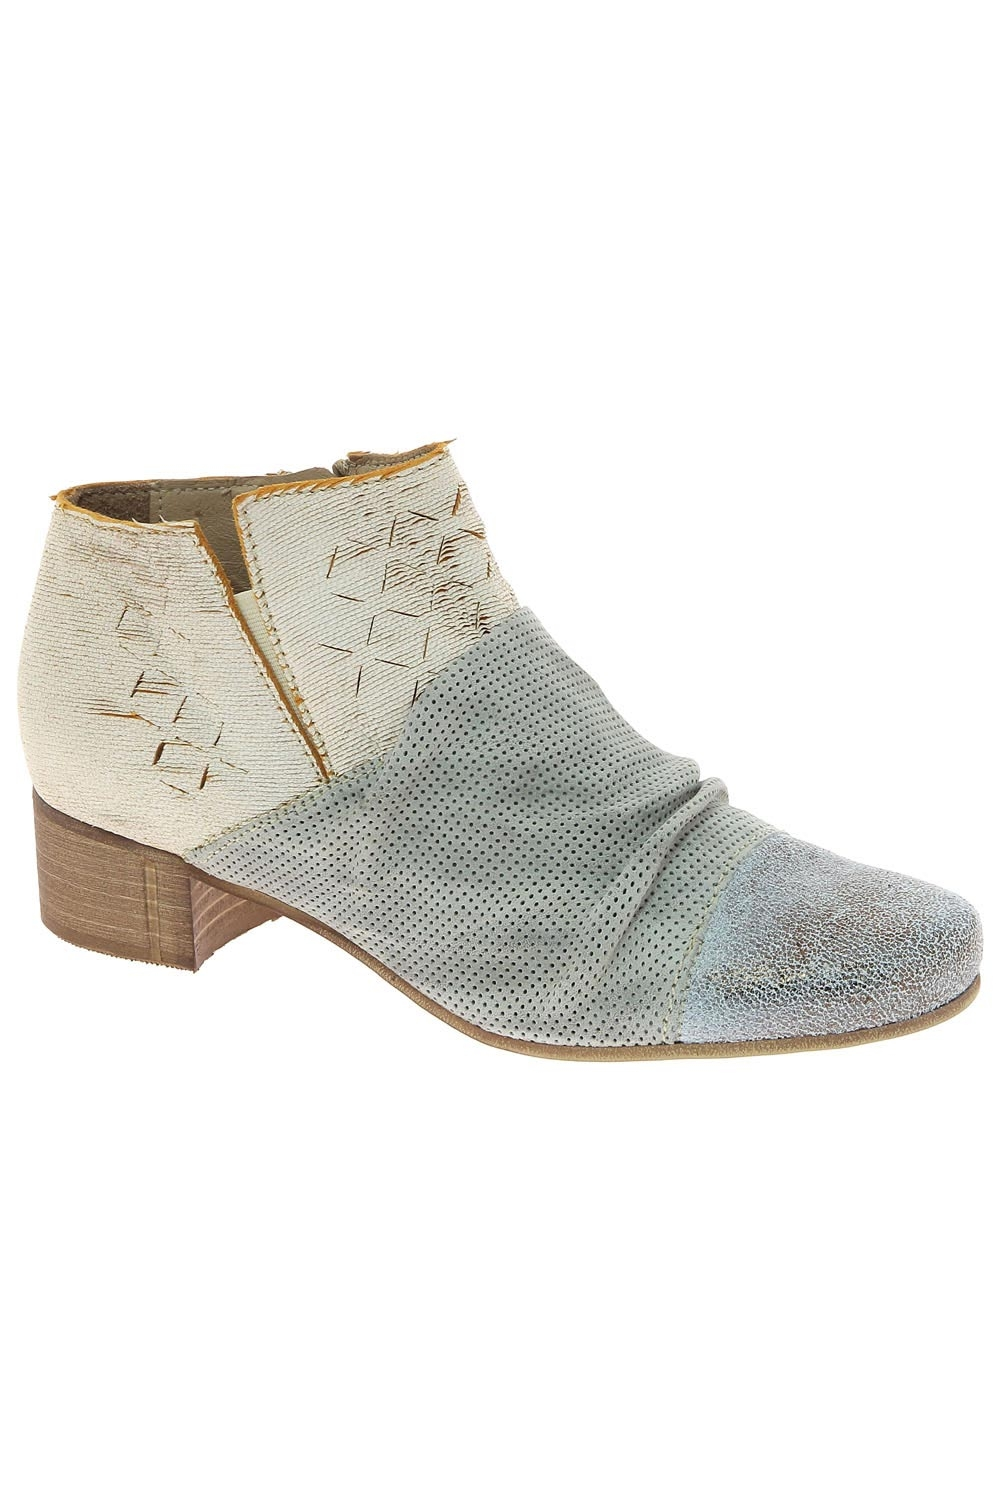 bottines italiennes pour l ete - bottines femme en cuir made in italy